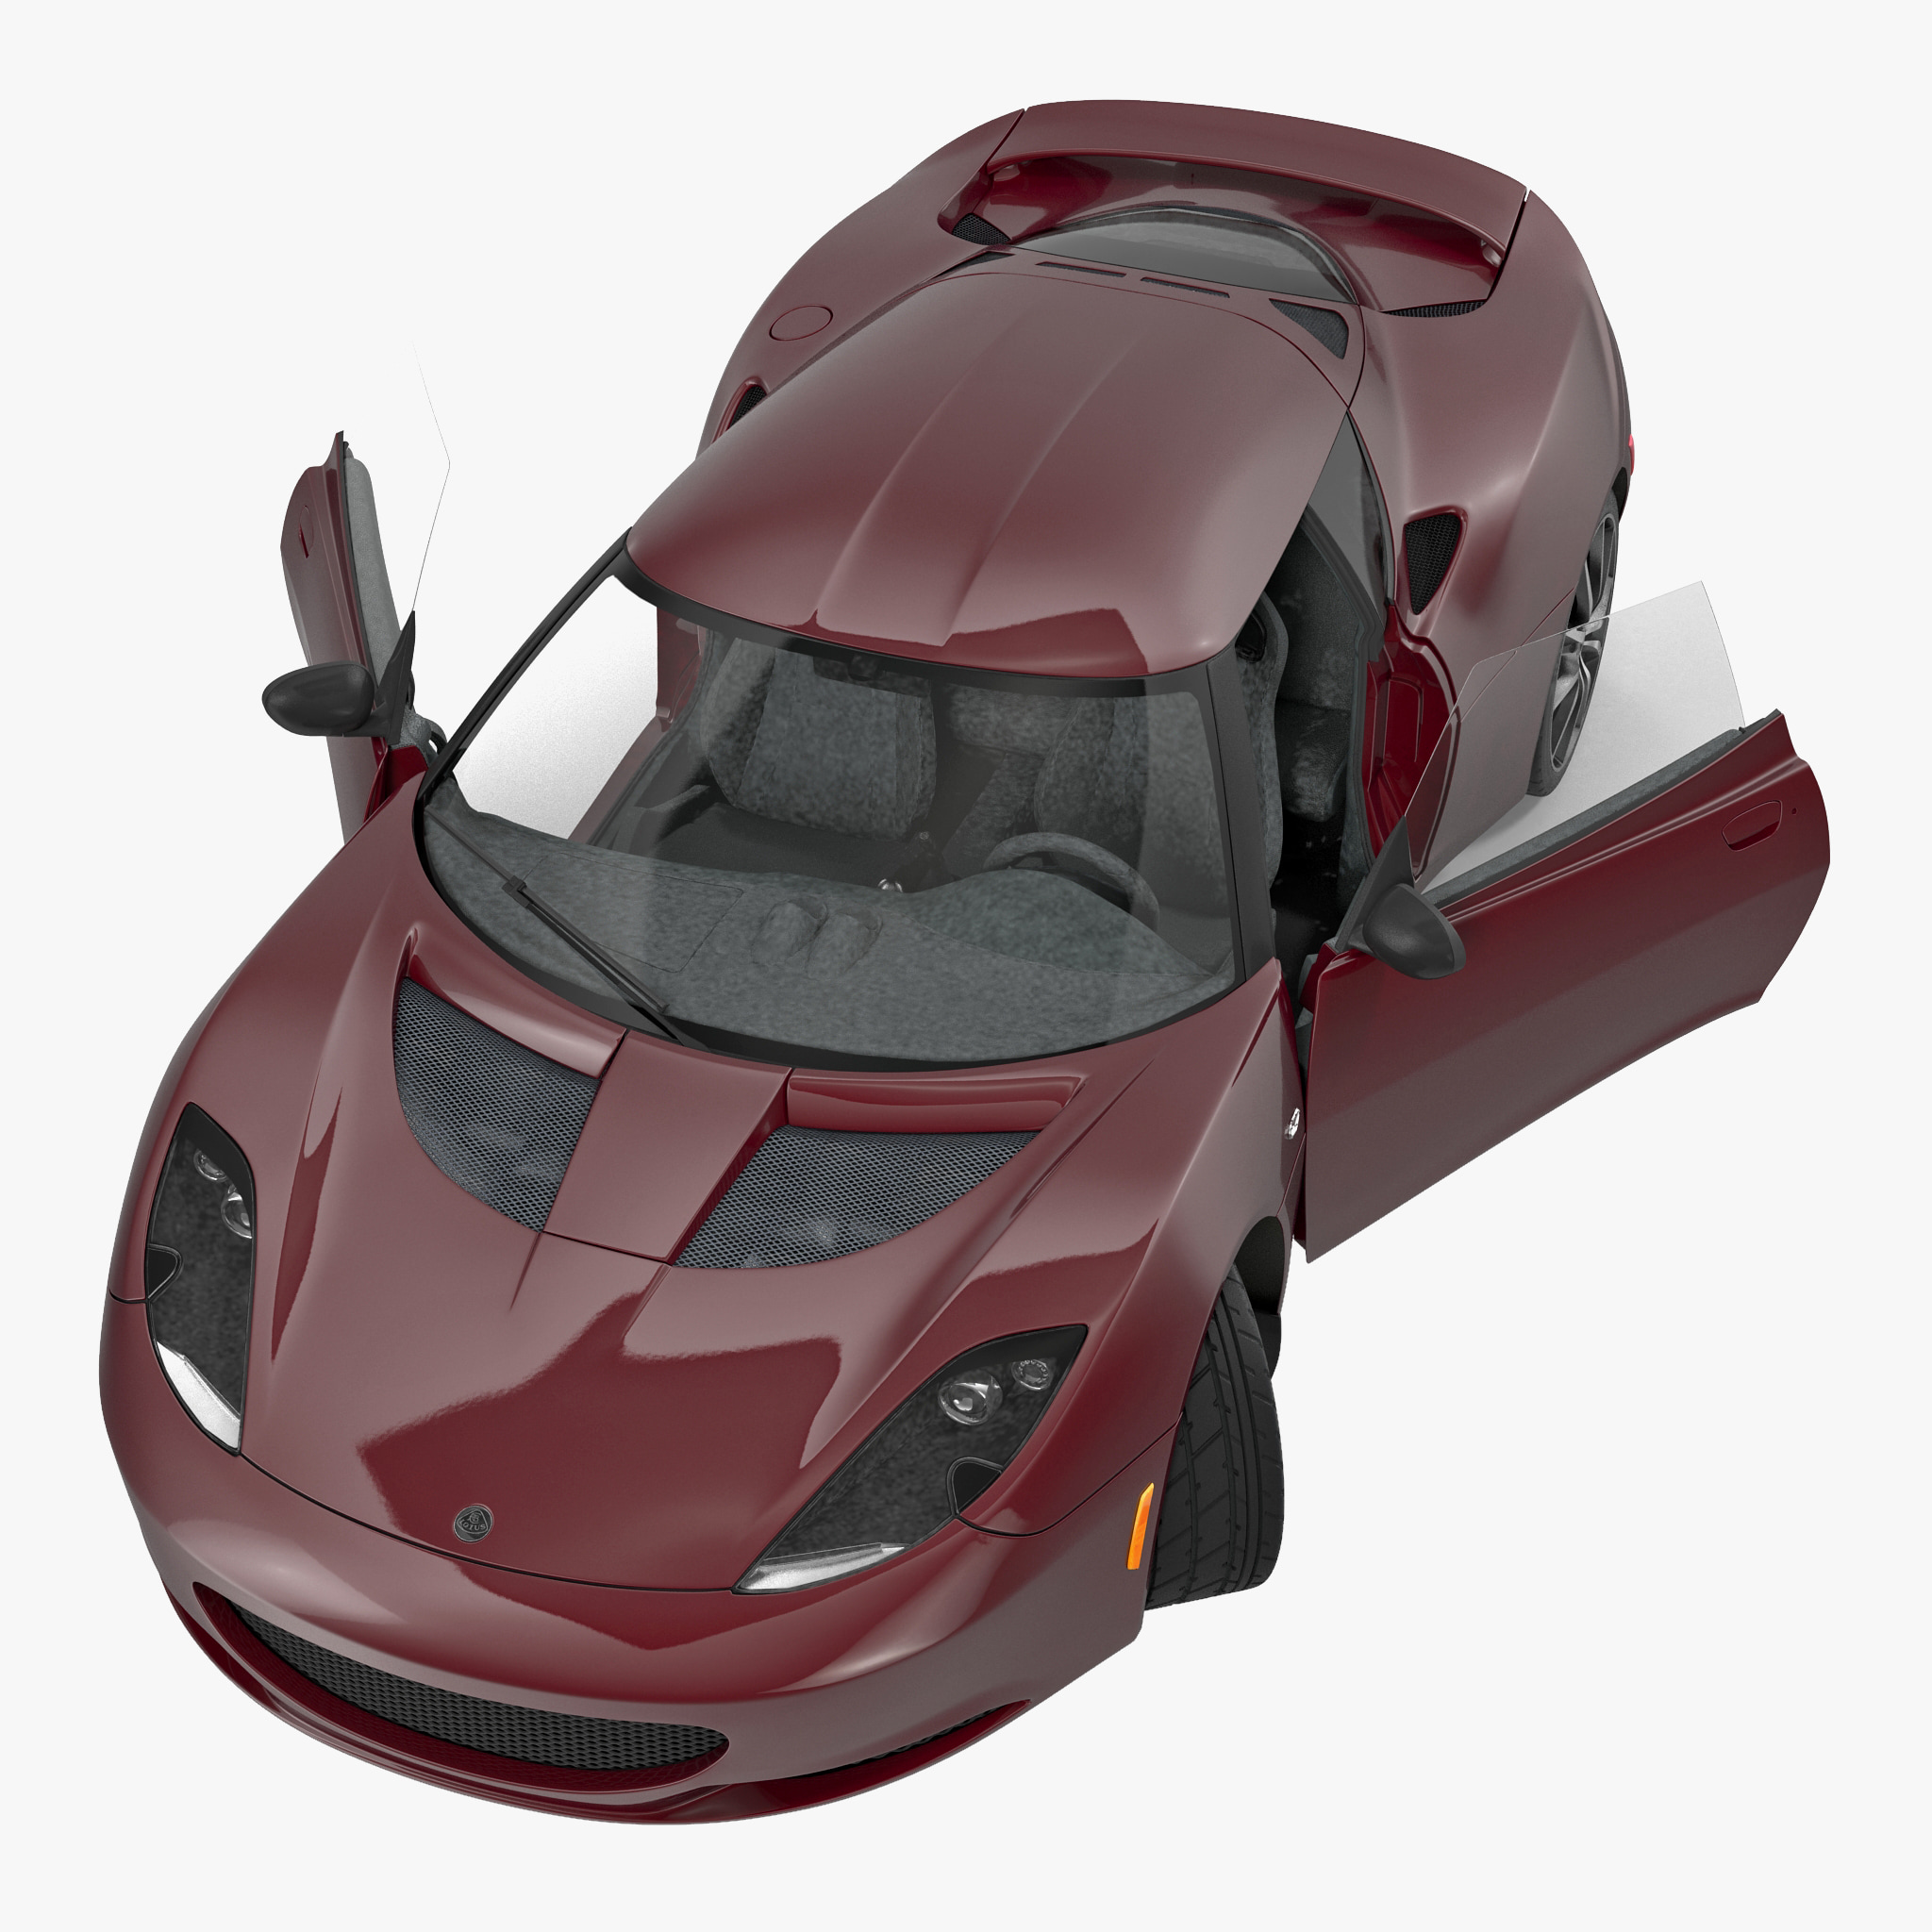 evora ips 2014 rigged 3d model